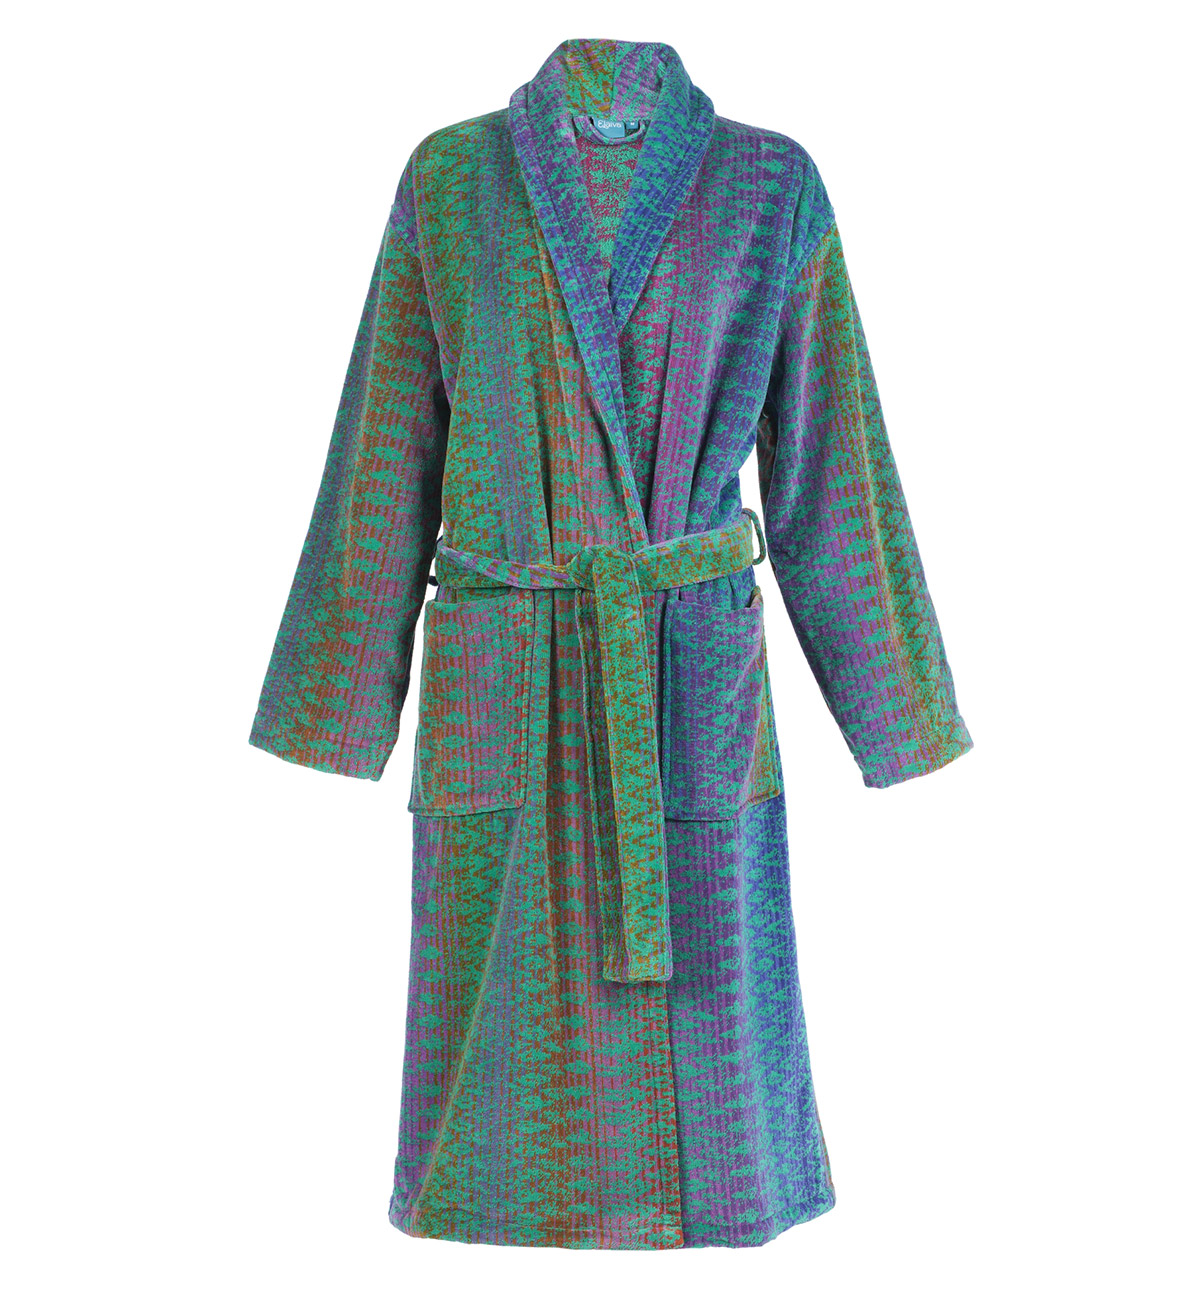 Green Ocean Magic Collar Bath Robe (S)